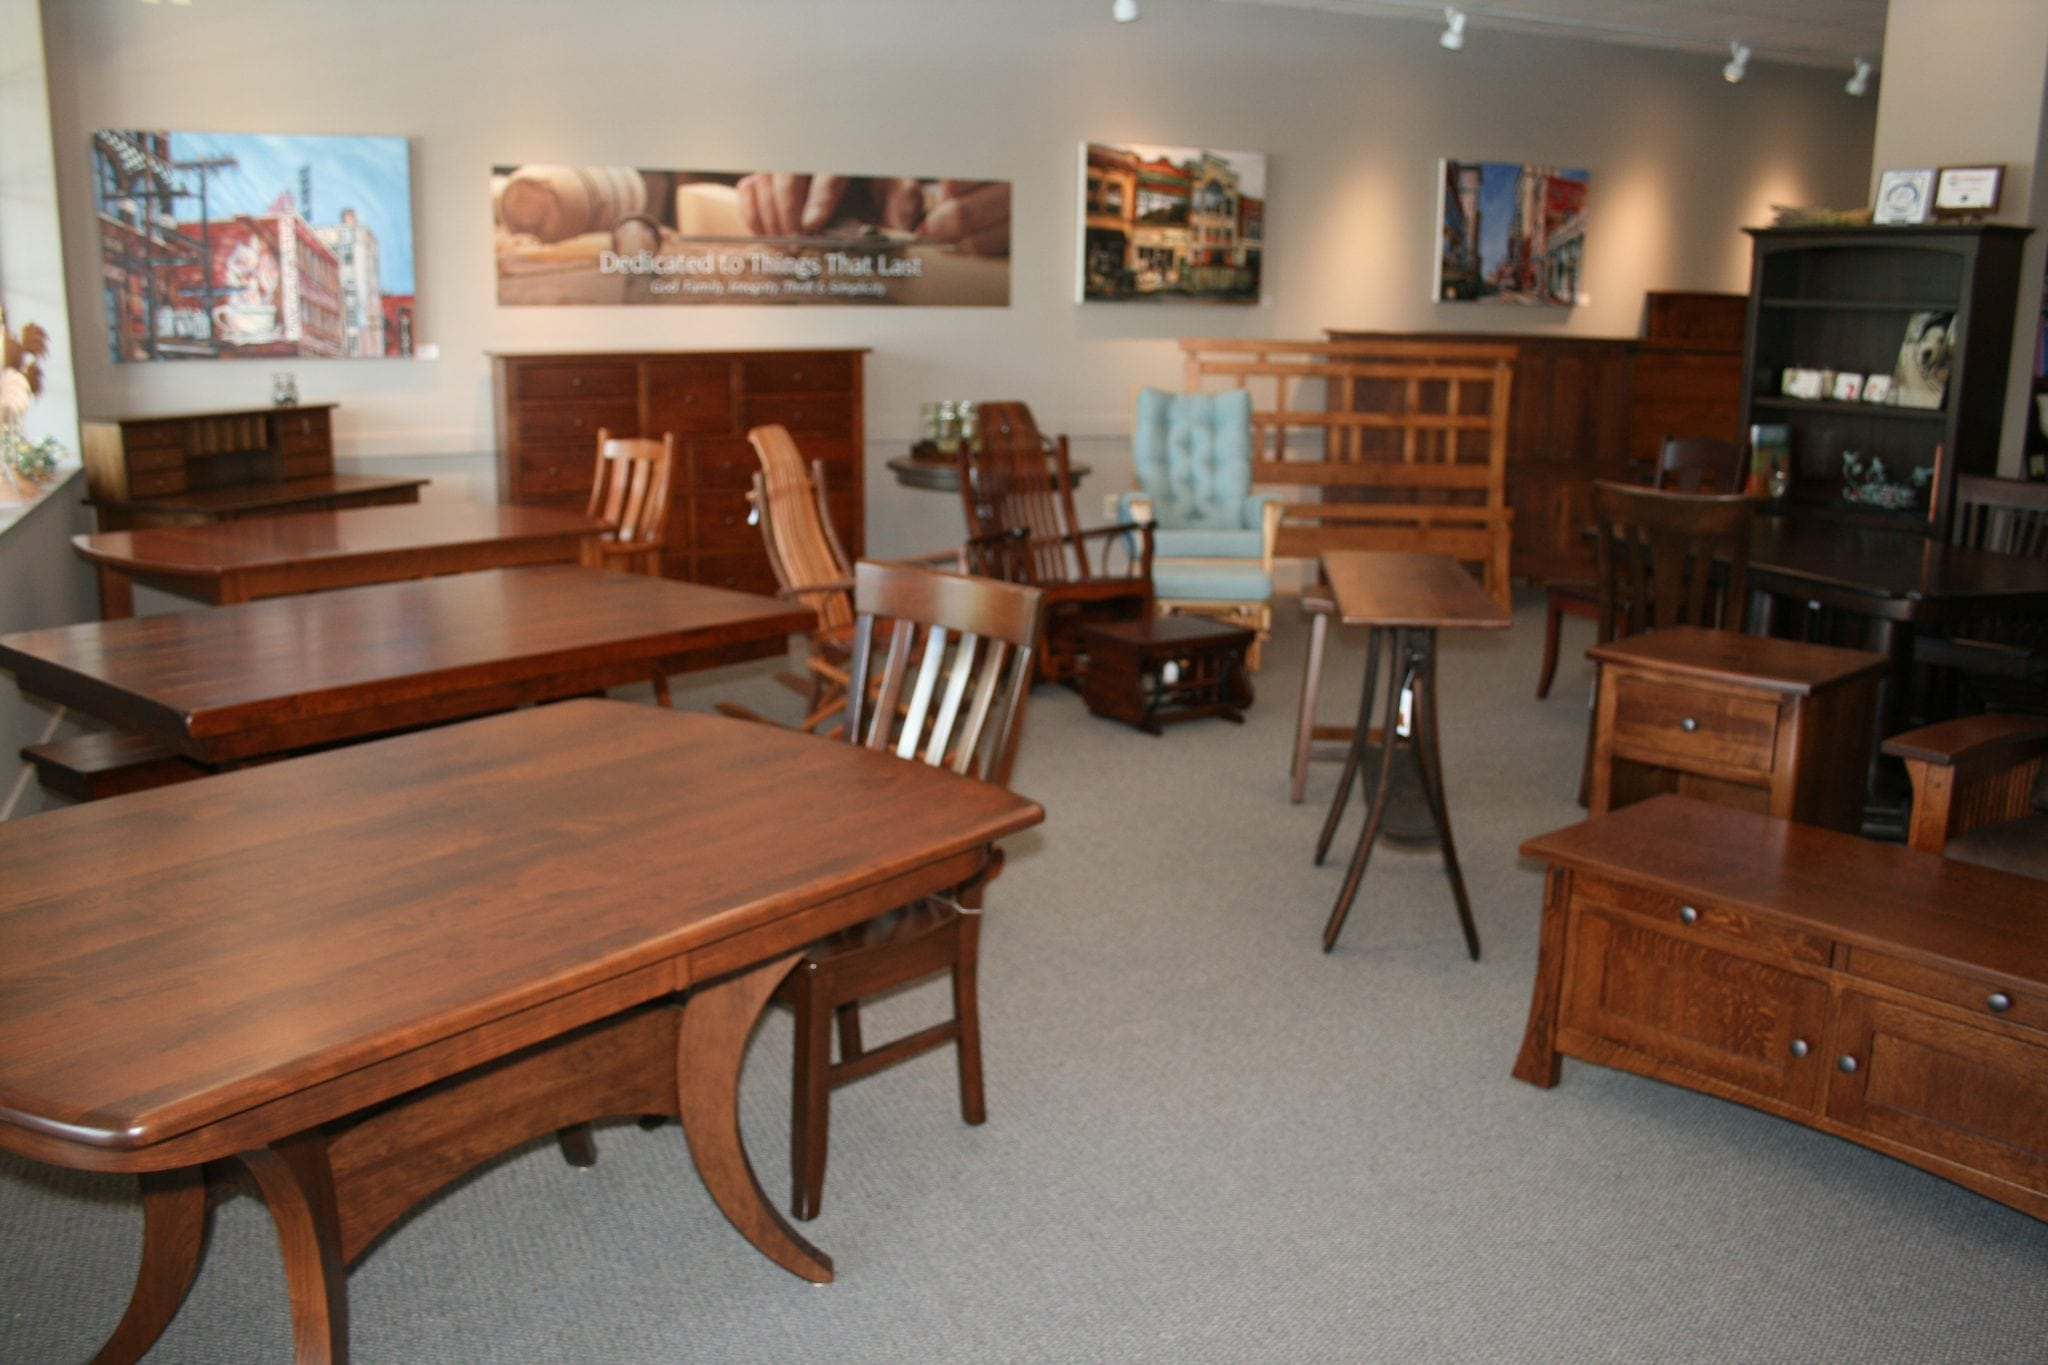 East Tn Mountain Views Discover Sustainable Furniture